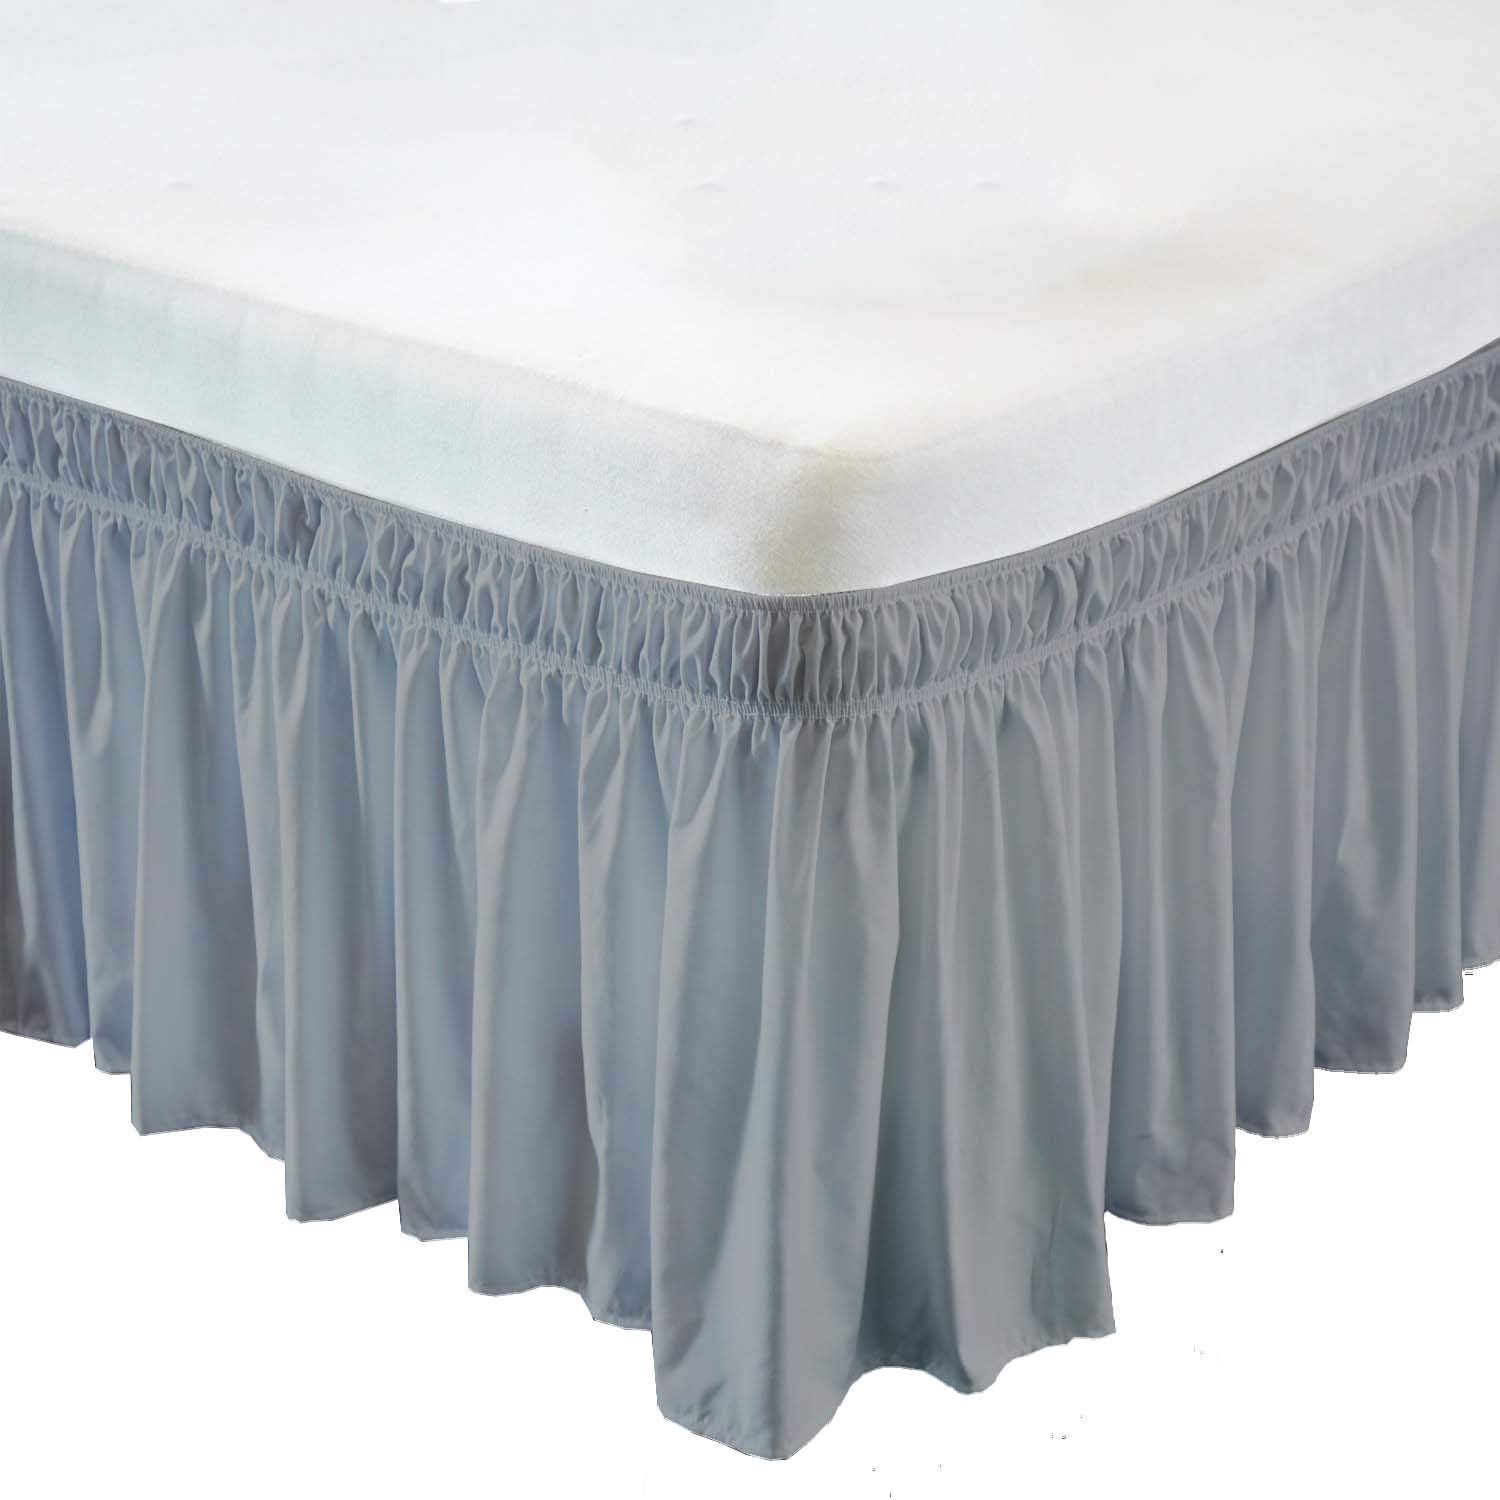 Wrap Around Bed Skirt- 24 Inch Drop Length Style Easy Fit Elastic Bed Ruffles Bed-Skirt Wrinkle Free Bed Skirt - Light Grey, King in All Bed Sizes and Colors